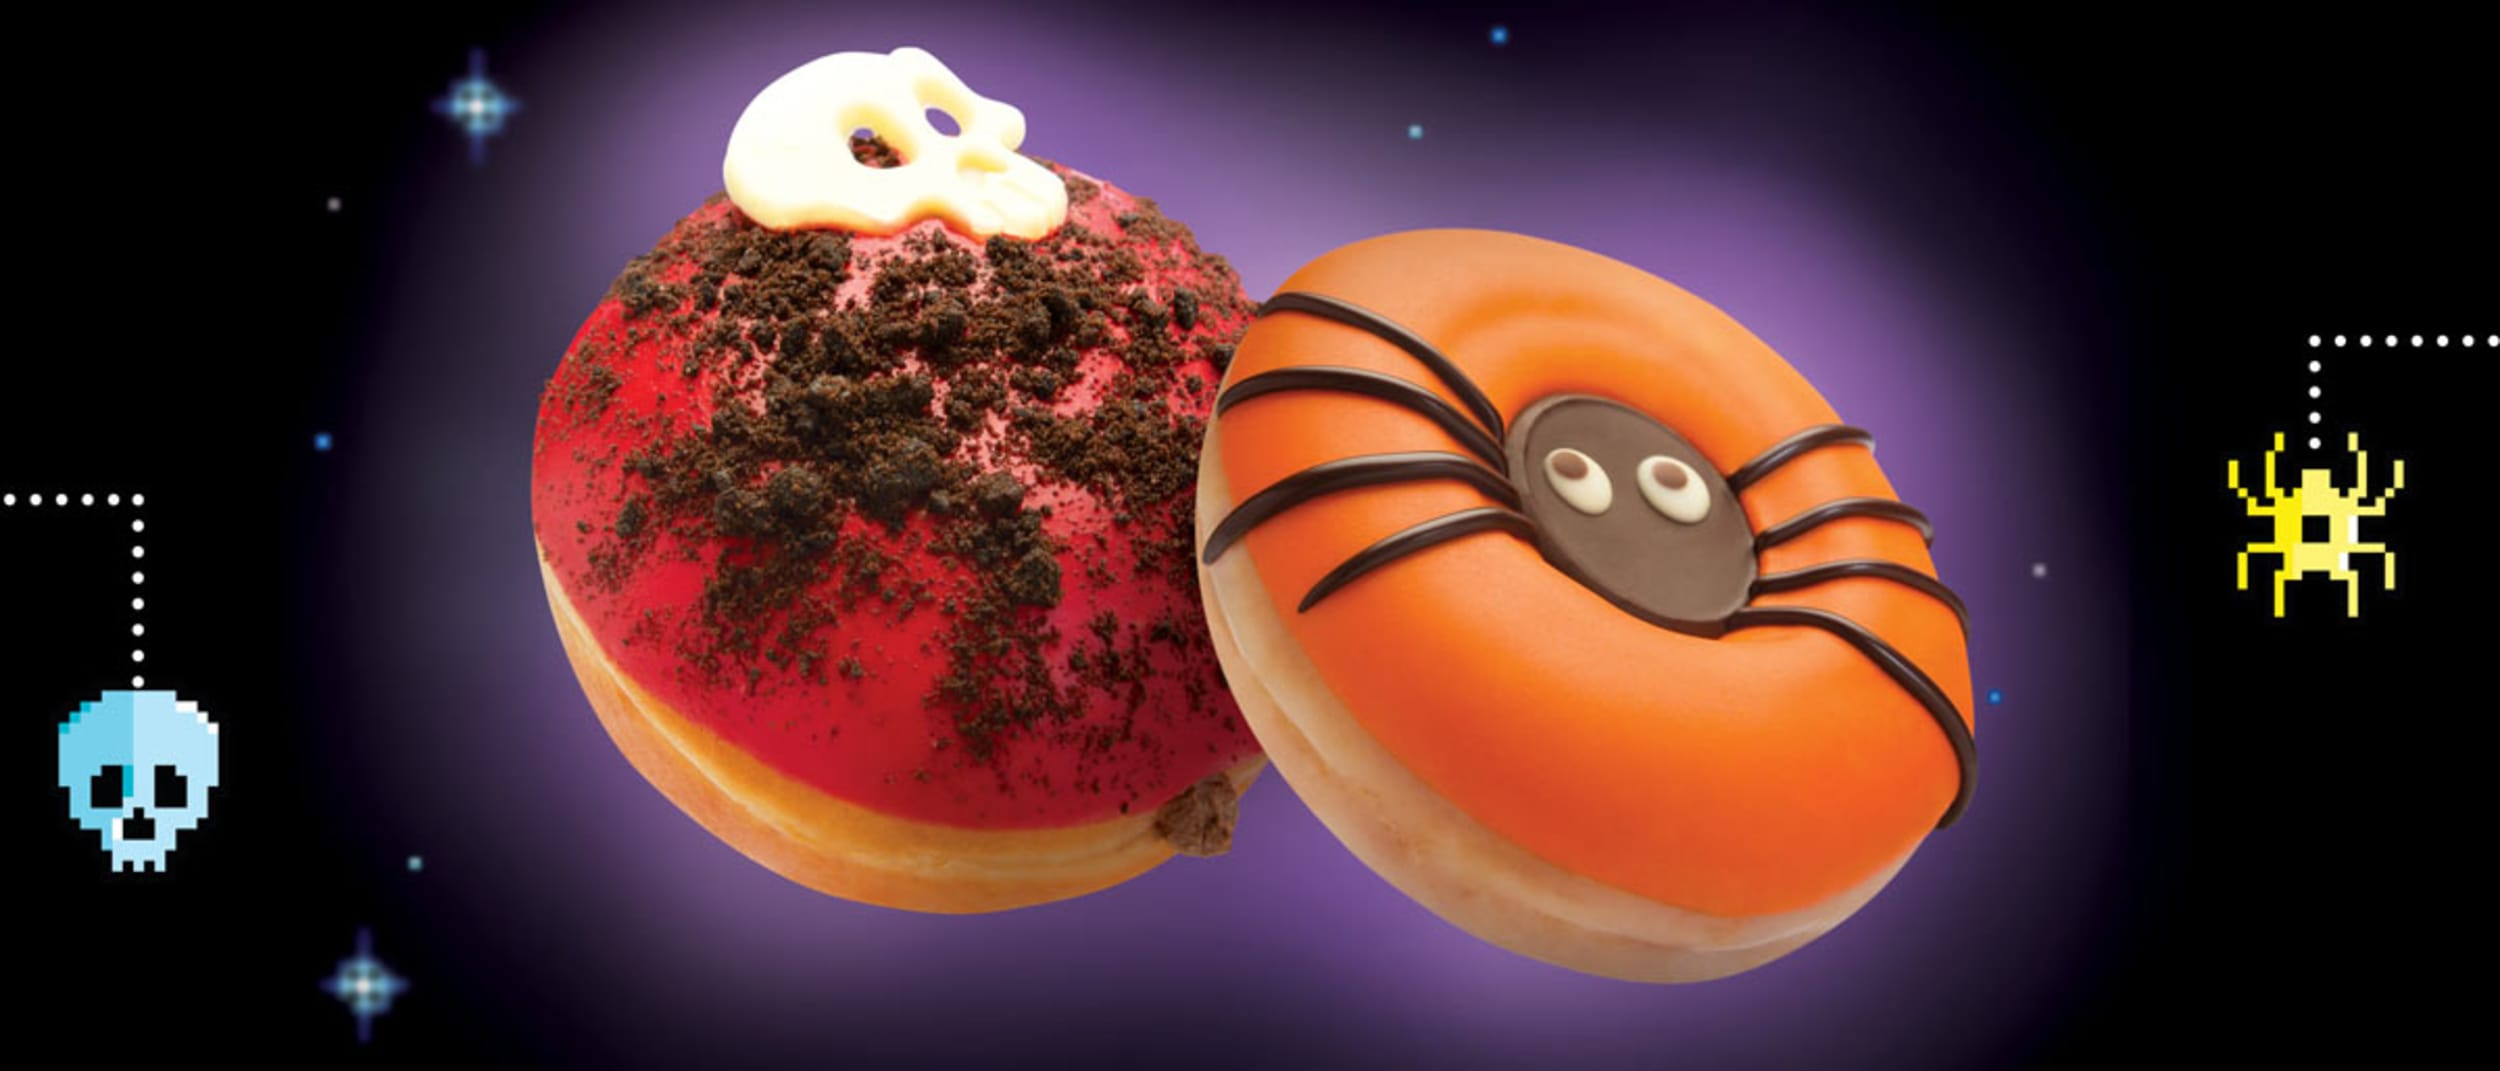 Halloween: Doughnut decorating with Krispy Kreme